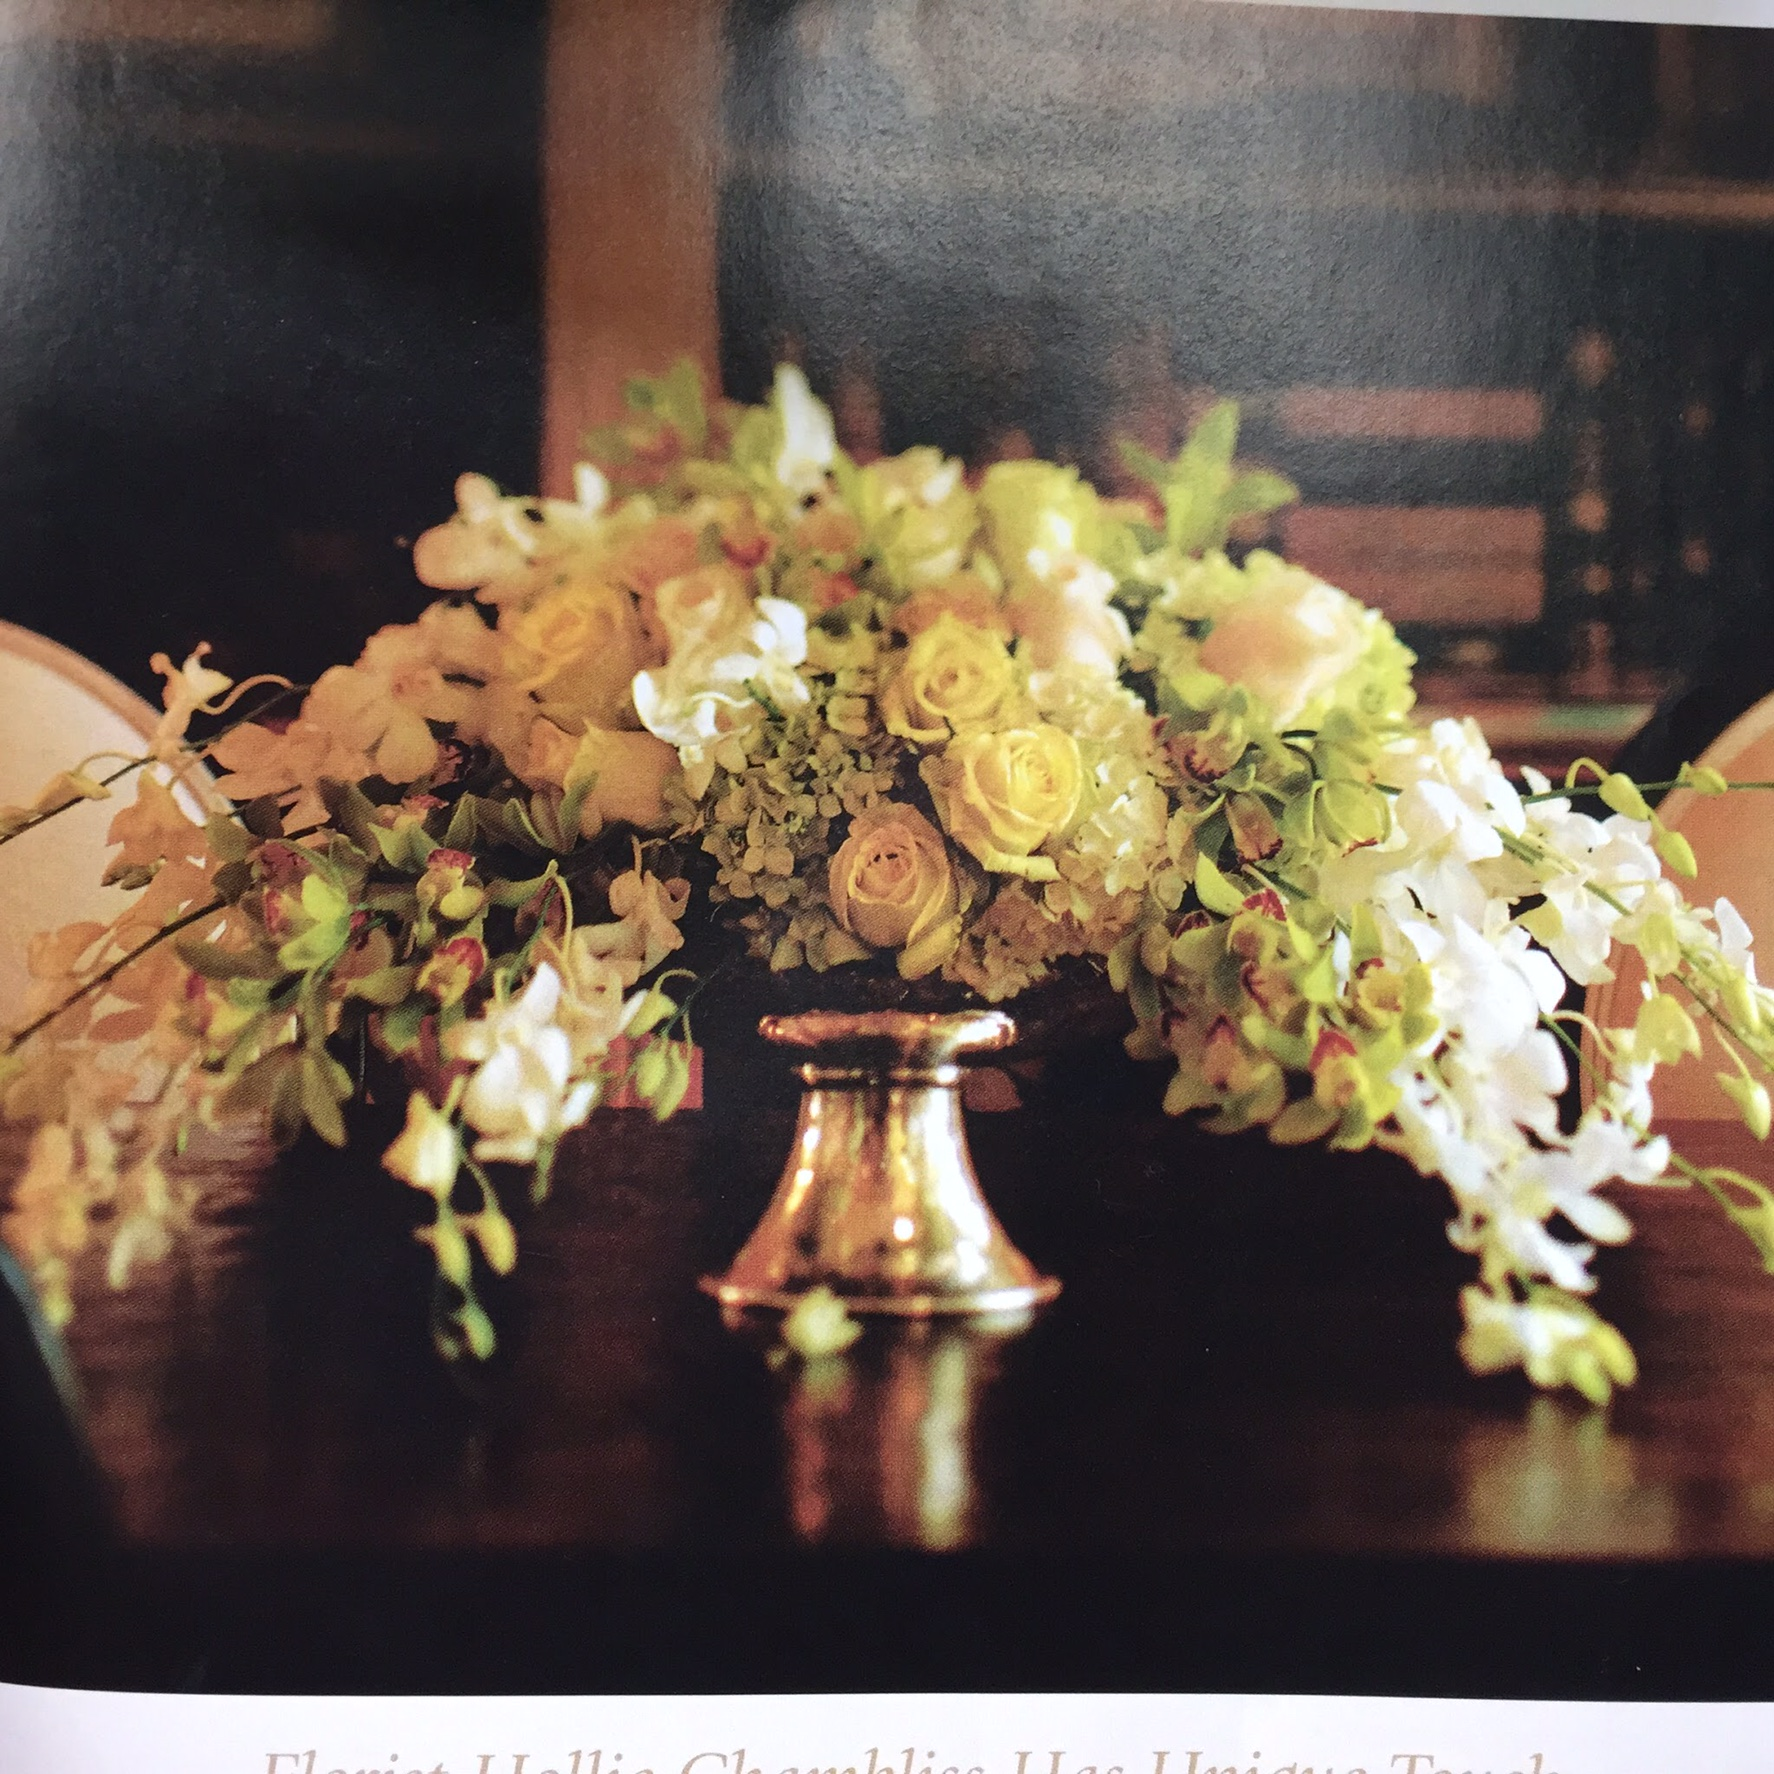 Cymbidium and Dendrobium orchids roses viburnum and hydrangeas in sterling silver bowl